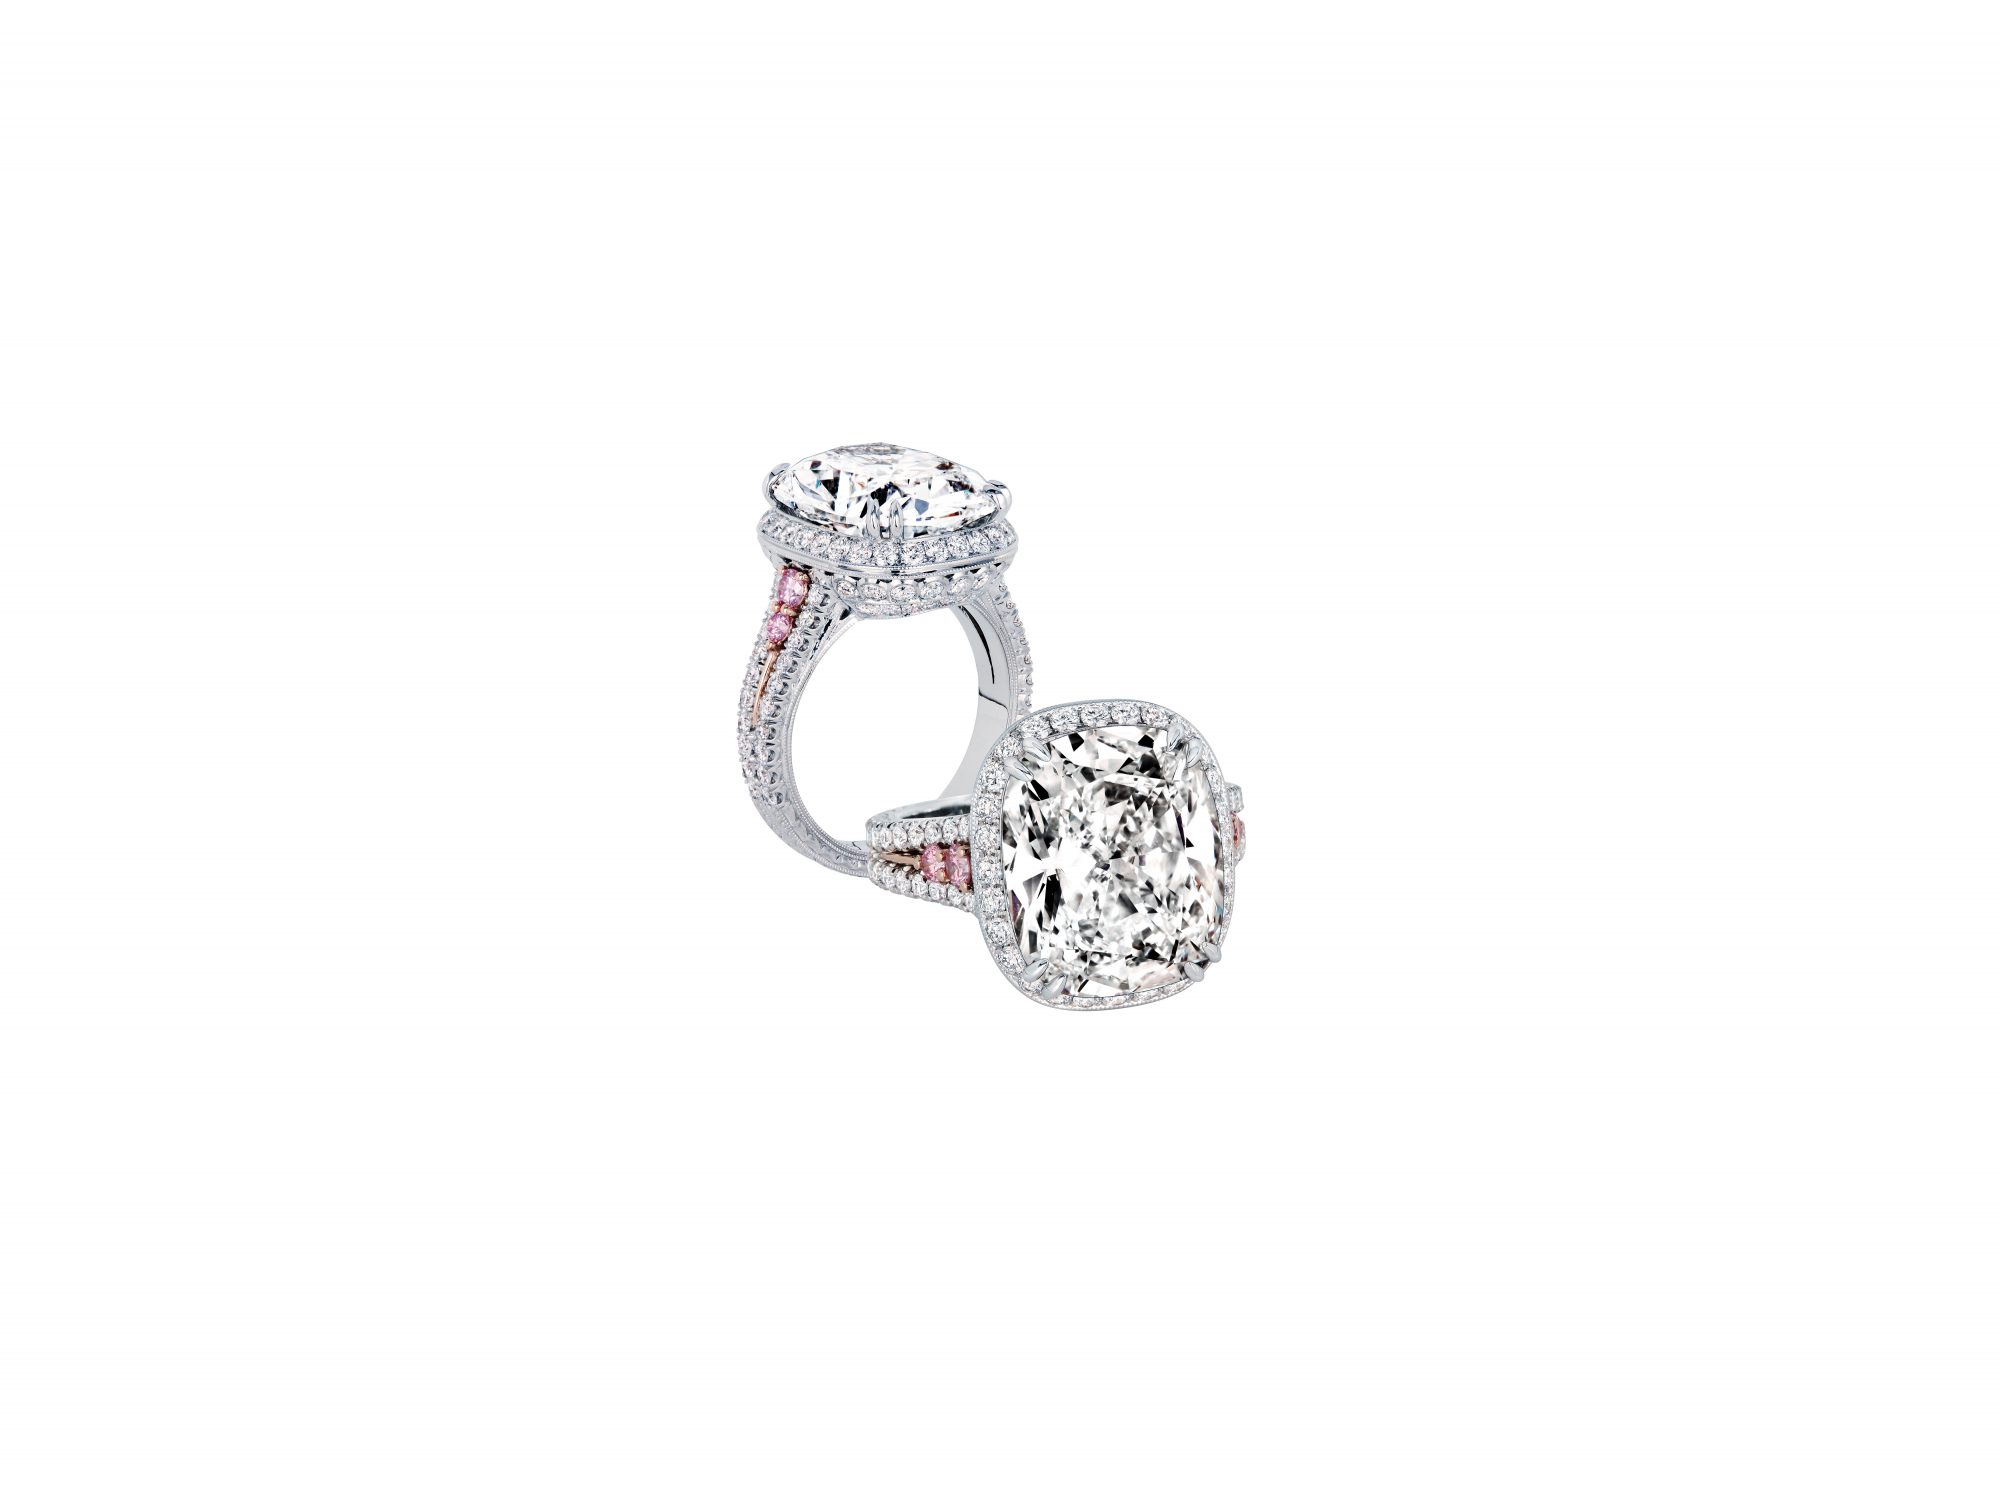 jack kelege cushion cut engagement ring pink diamonds in shank